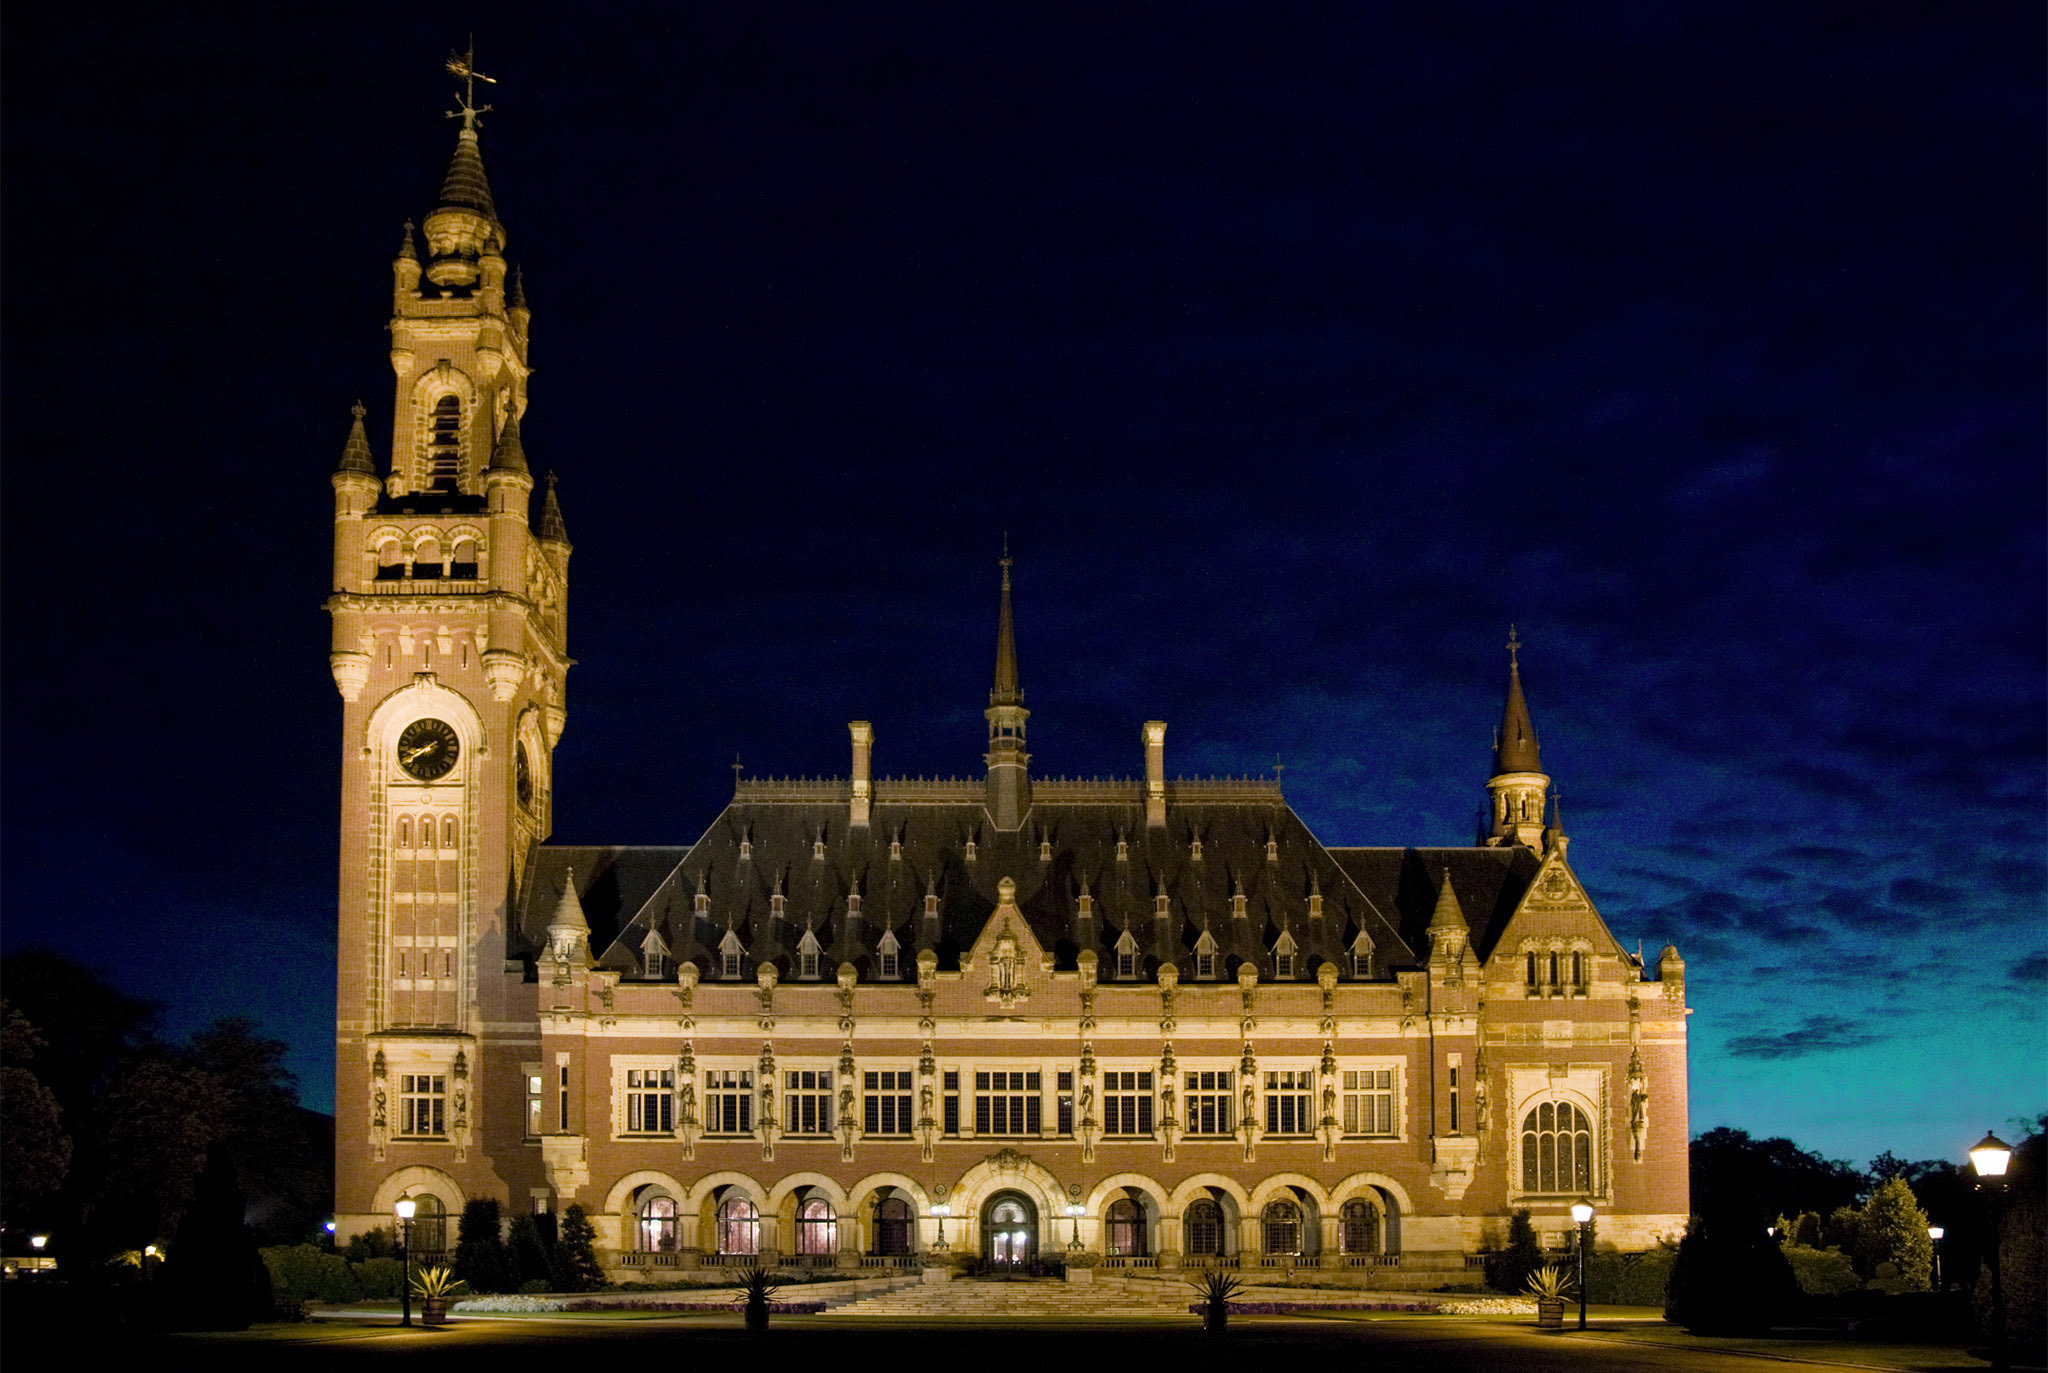 Photograph of the facade of the Peace Palace lit up at night time